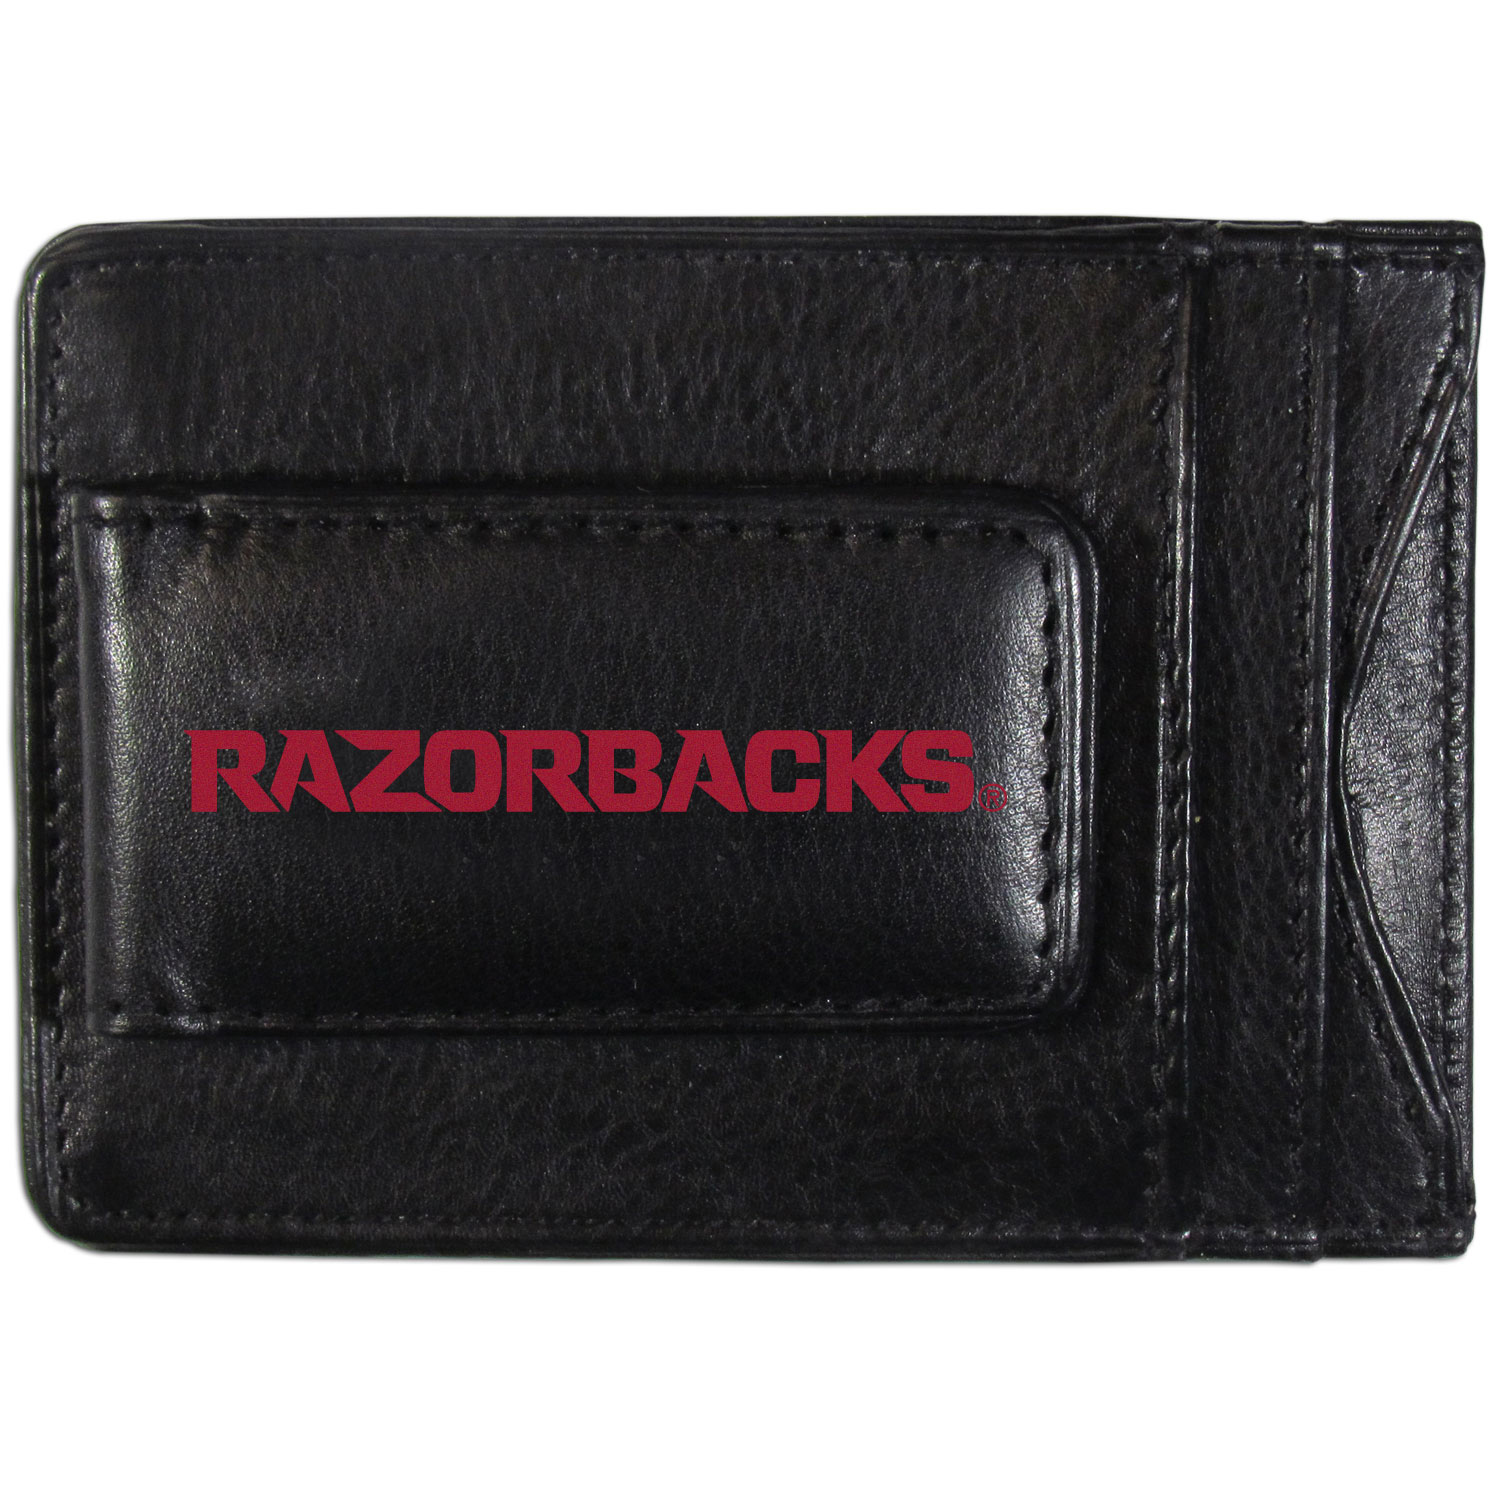 Arkansas Razorbacks Logo Leather Cash and Cardholder - This super slim leather wallet lets you have all the benefits of a money clip while keeping the organization of a wallet. On one side of this front pocket wallet there is a strong, magnetic money clip to keep your cash easily accessible and the?Arkansas Razorbacks team logo on the front. The versatile men's accessory is a perfect addition to your fan apparel.